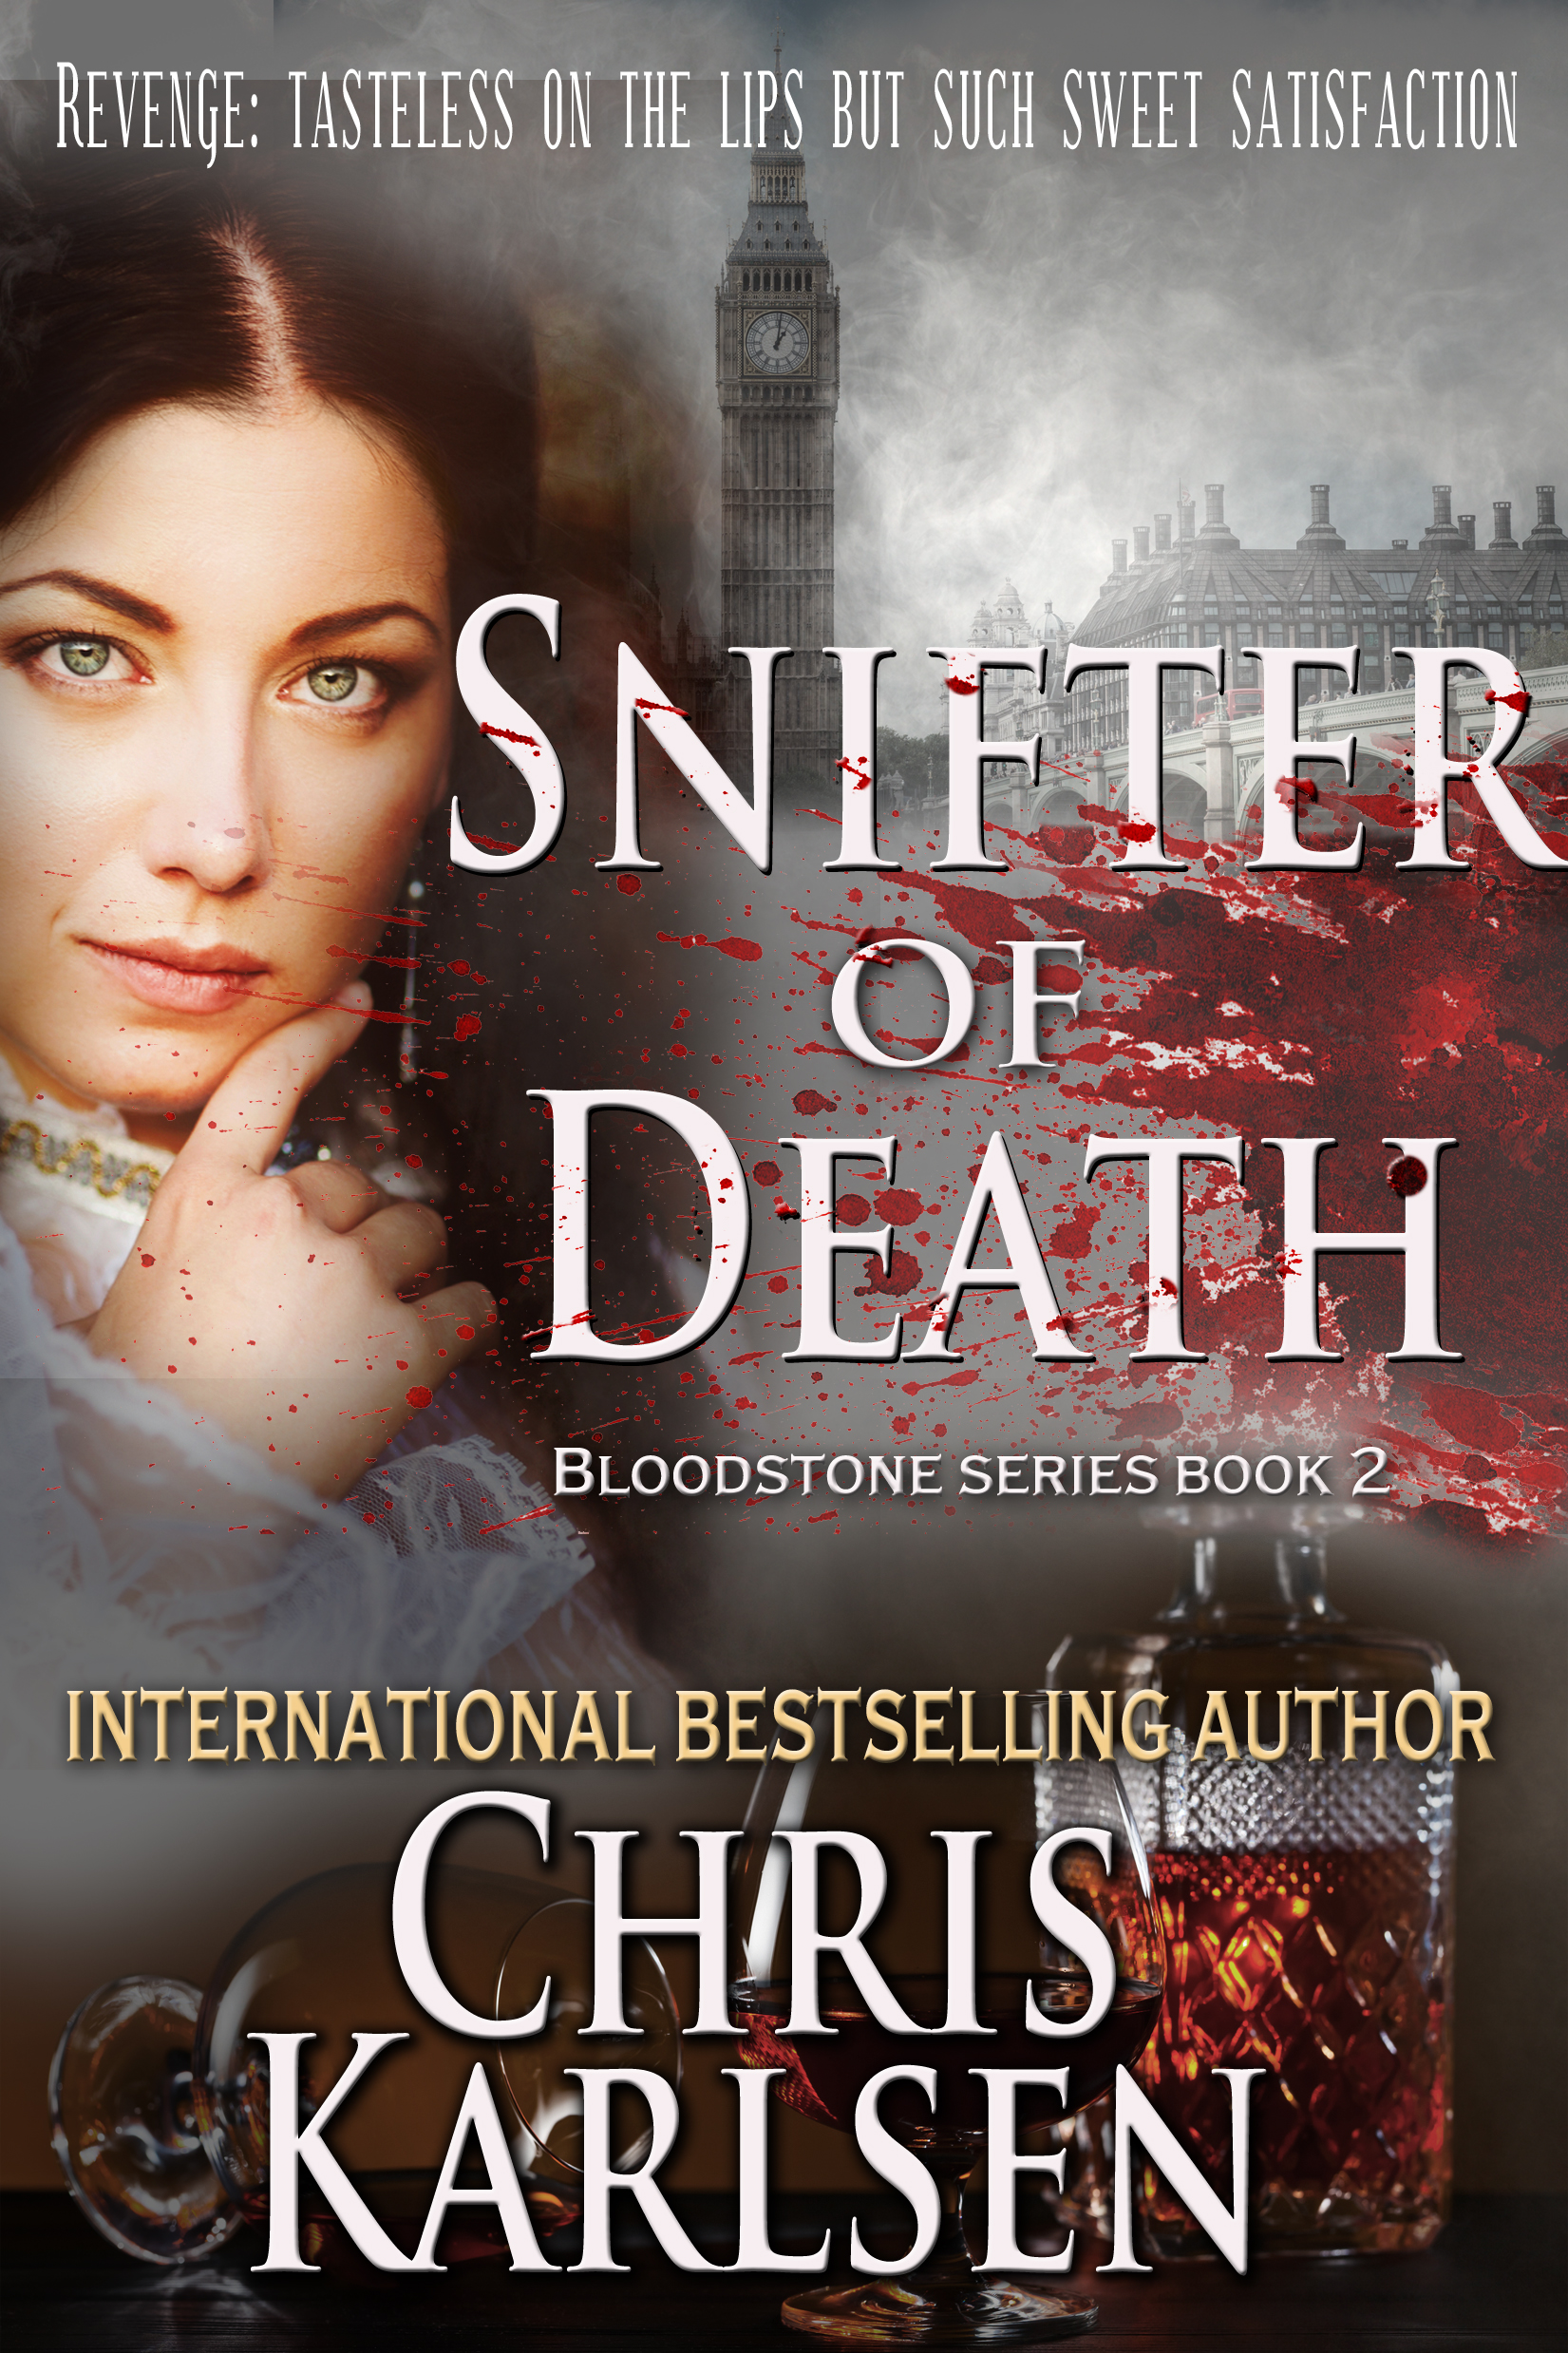 Snifter of Death by Chris Karlsen